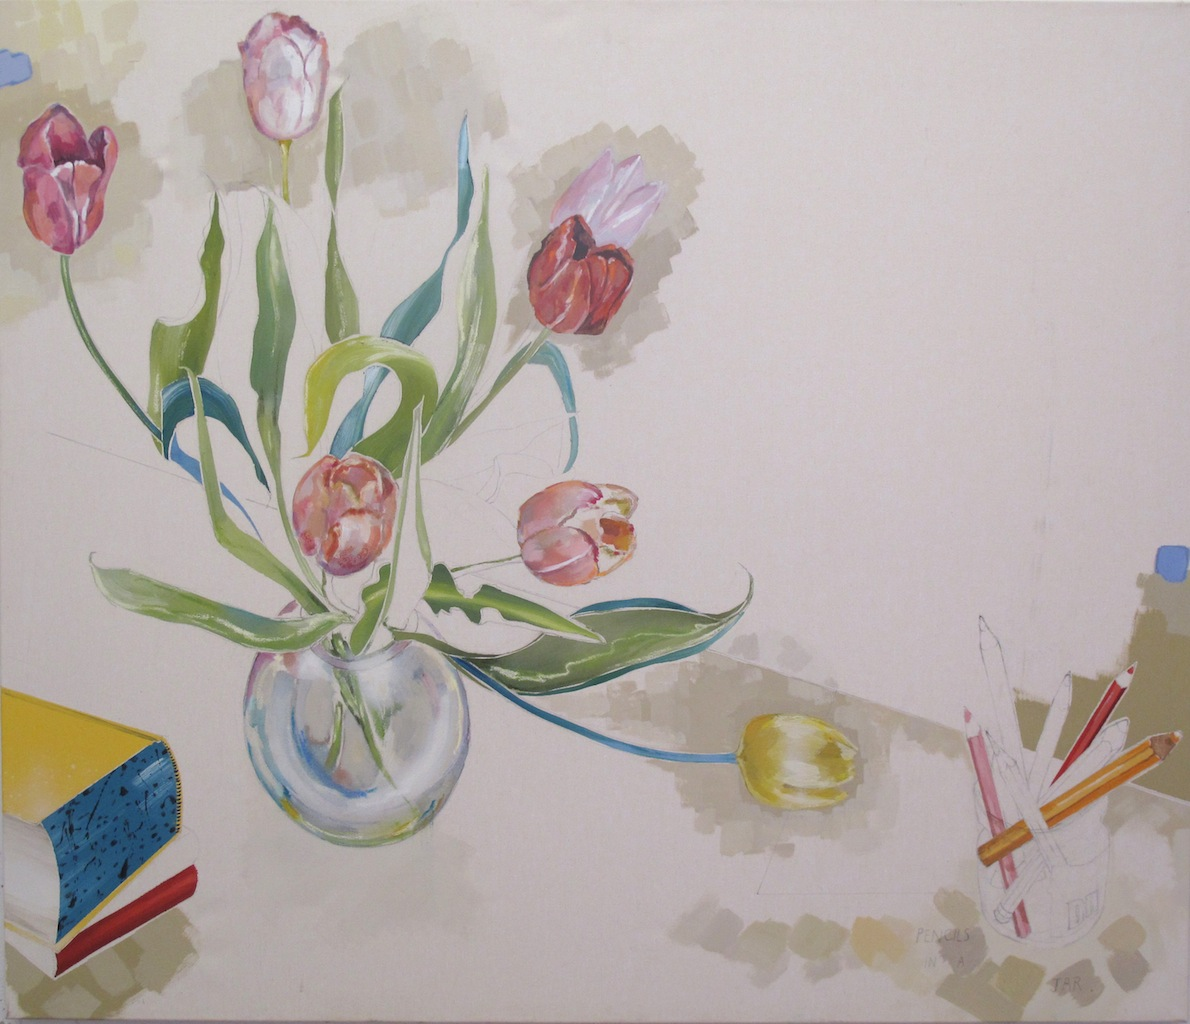 Tulips and Pencils